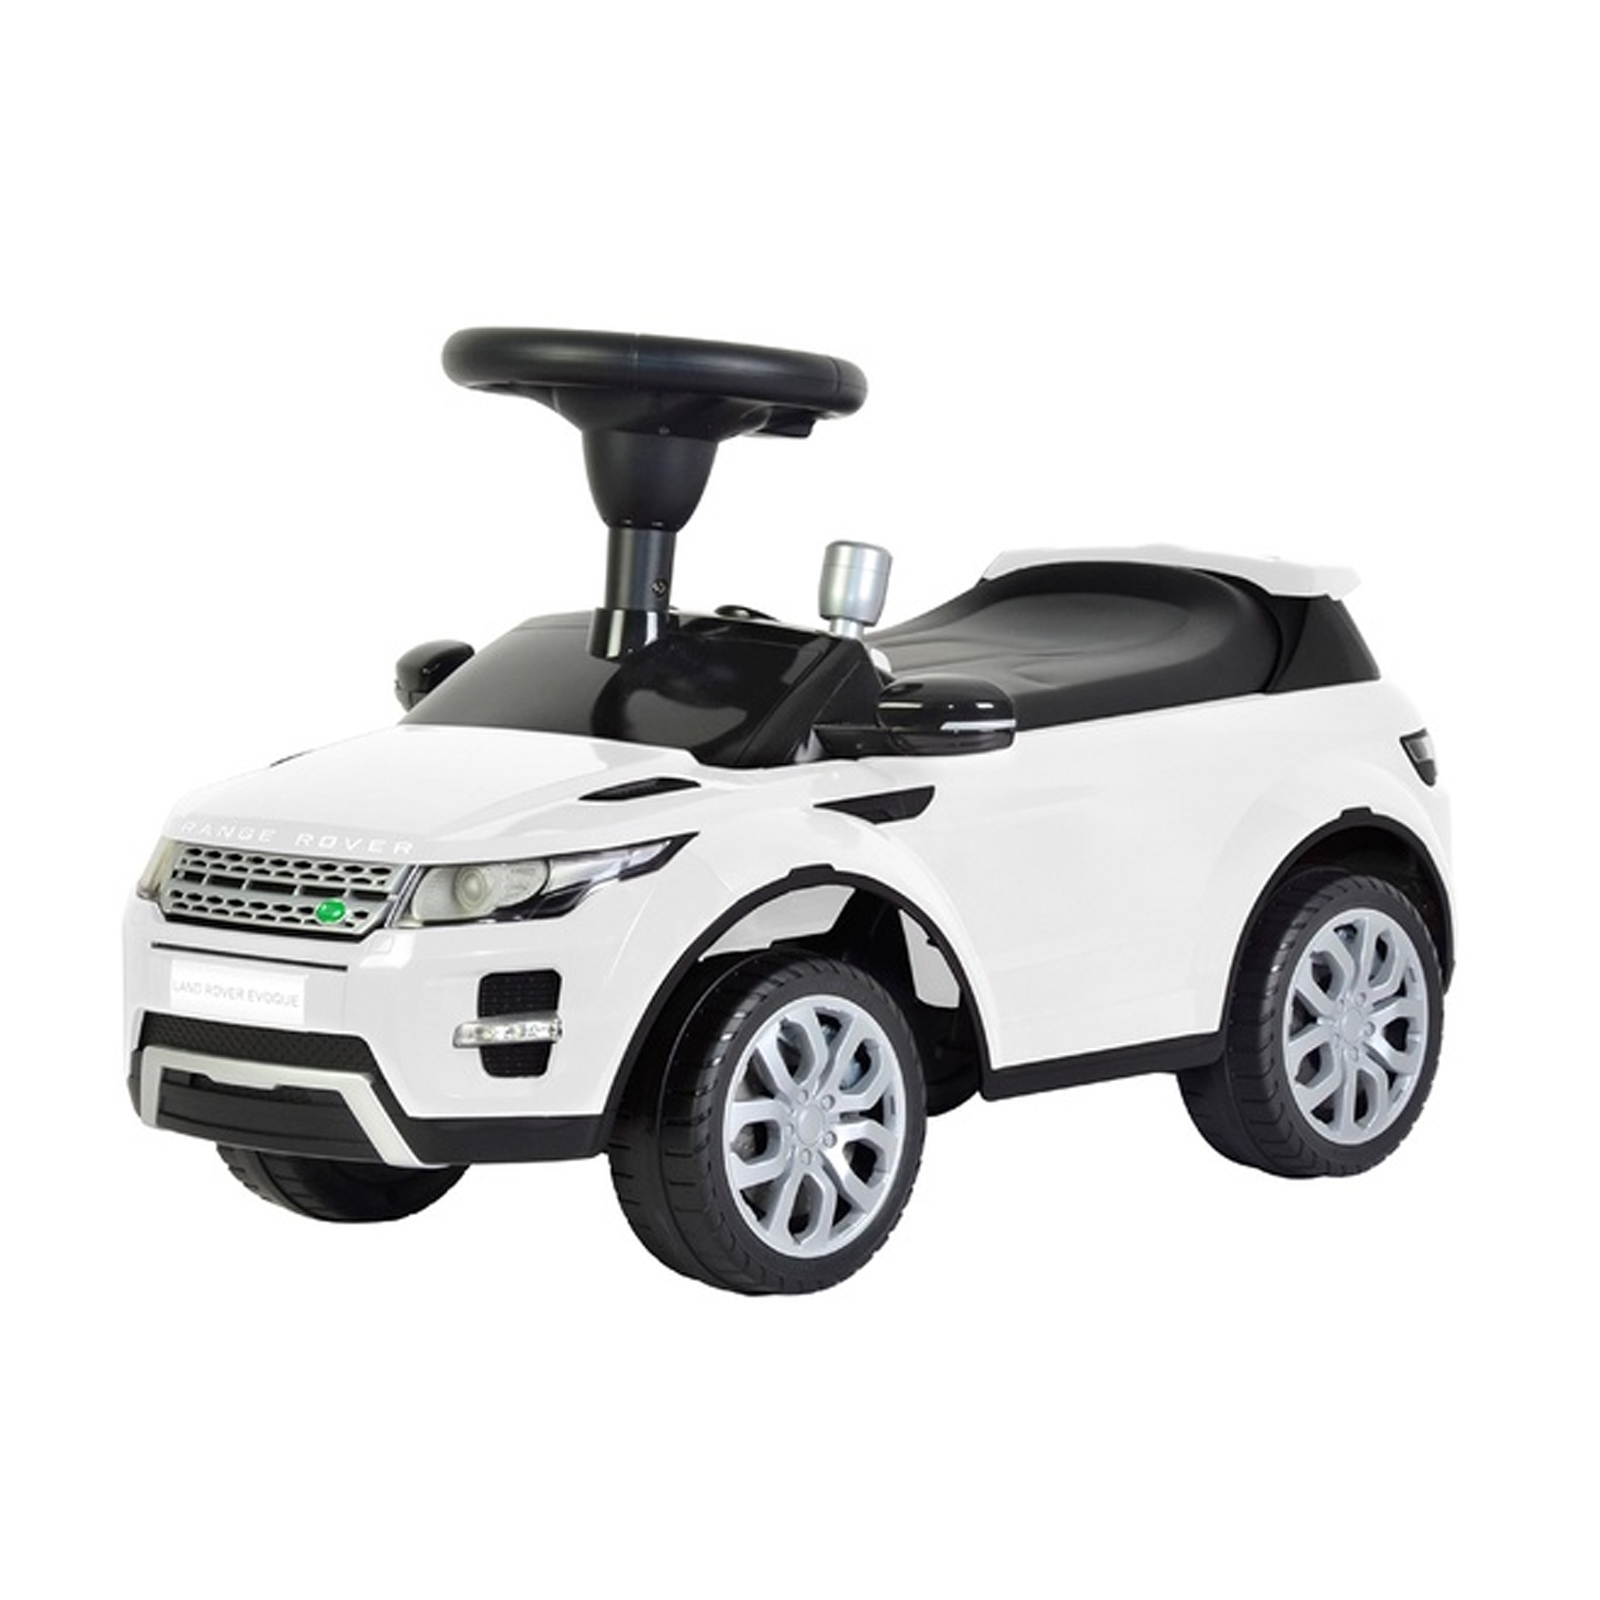 Licensed Range Rover Push Kids Ride Boys Toys Car